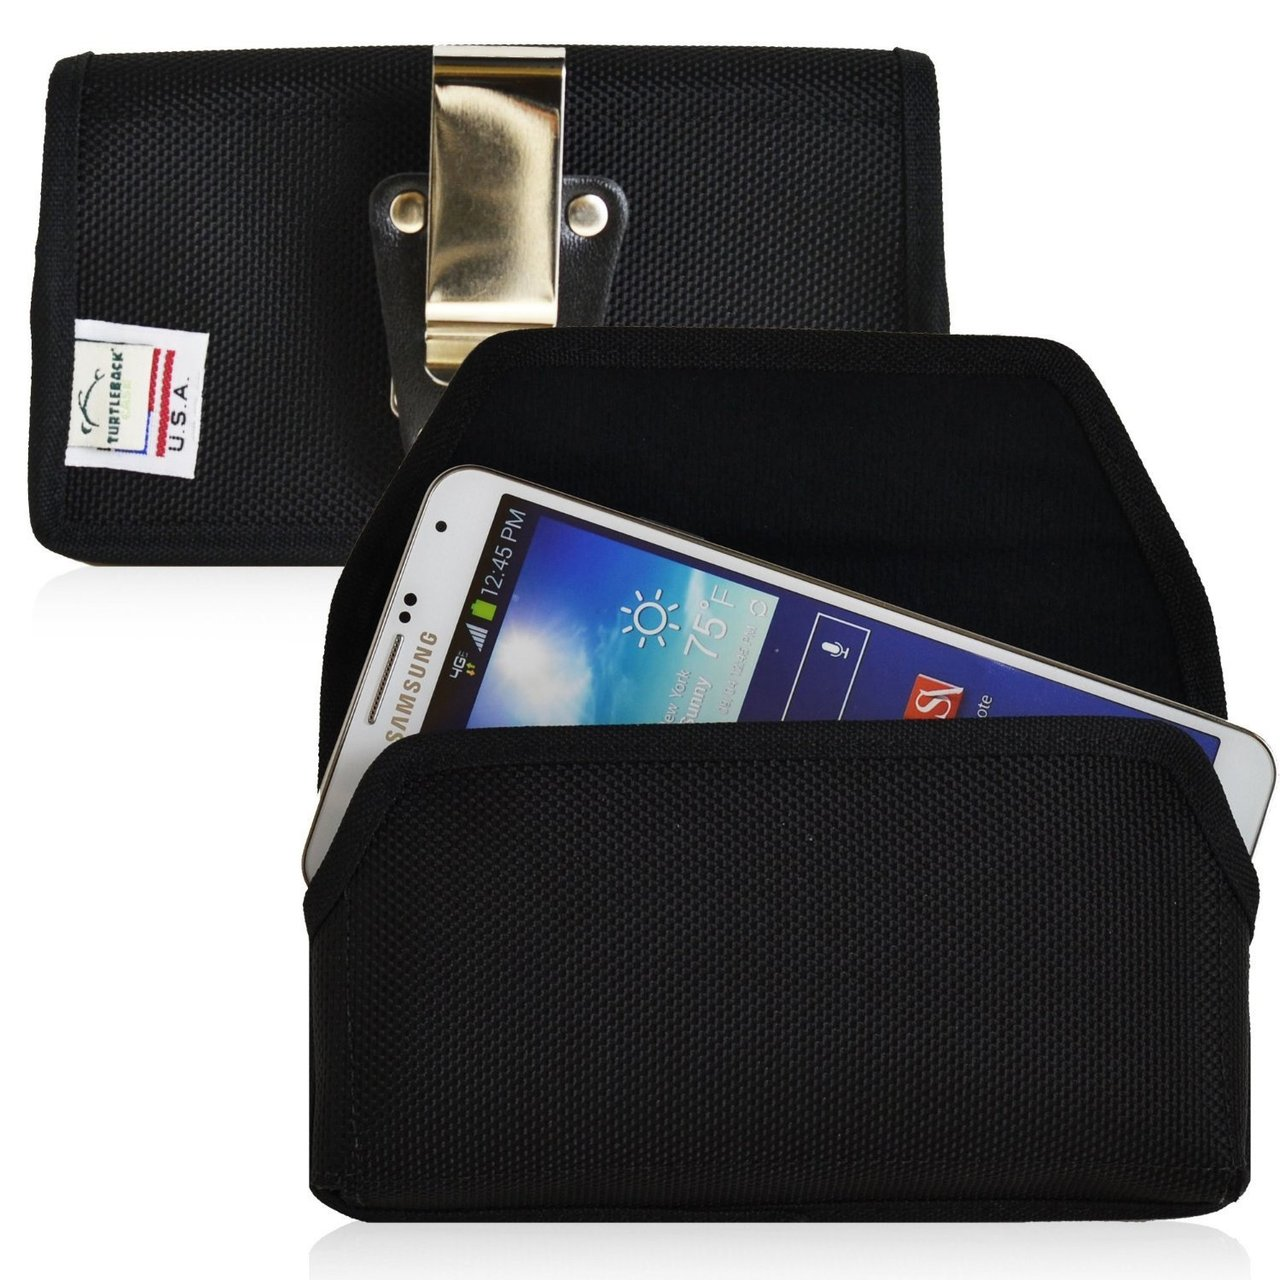 premium selection 43874 74b0b Horizontal Nylon Extended Holster for Samsung Galaxy S3 III with Bulky  Cases, Metal Belt Clip